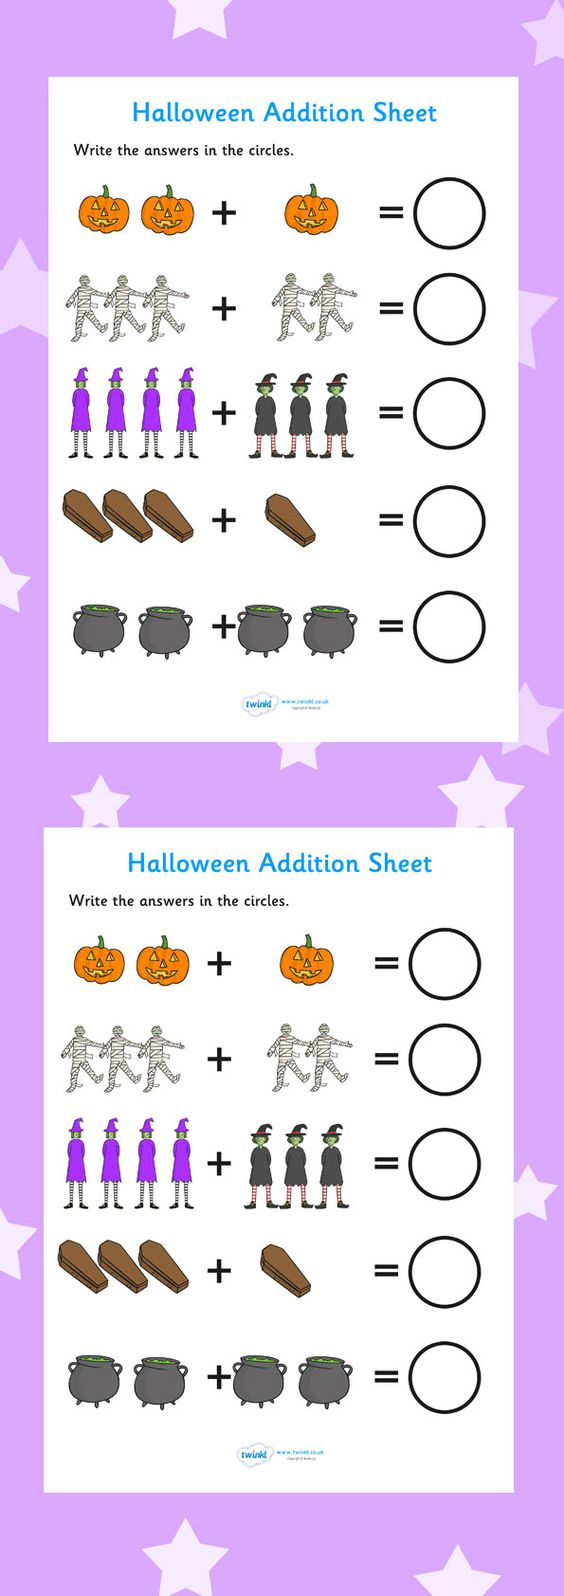 Worksheet 8001035 Maths Addition Worksheets Ks1 Free Printable – Ks1 Worksheets Maths